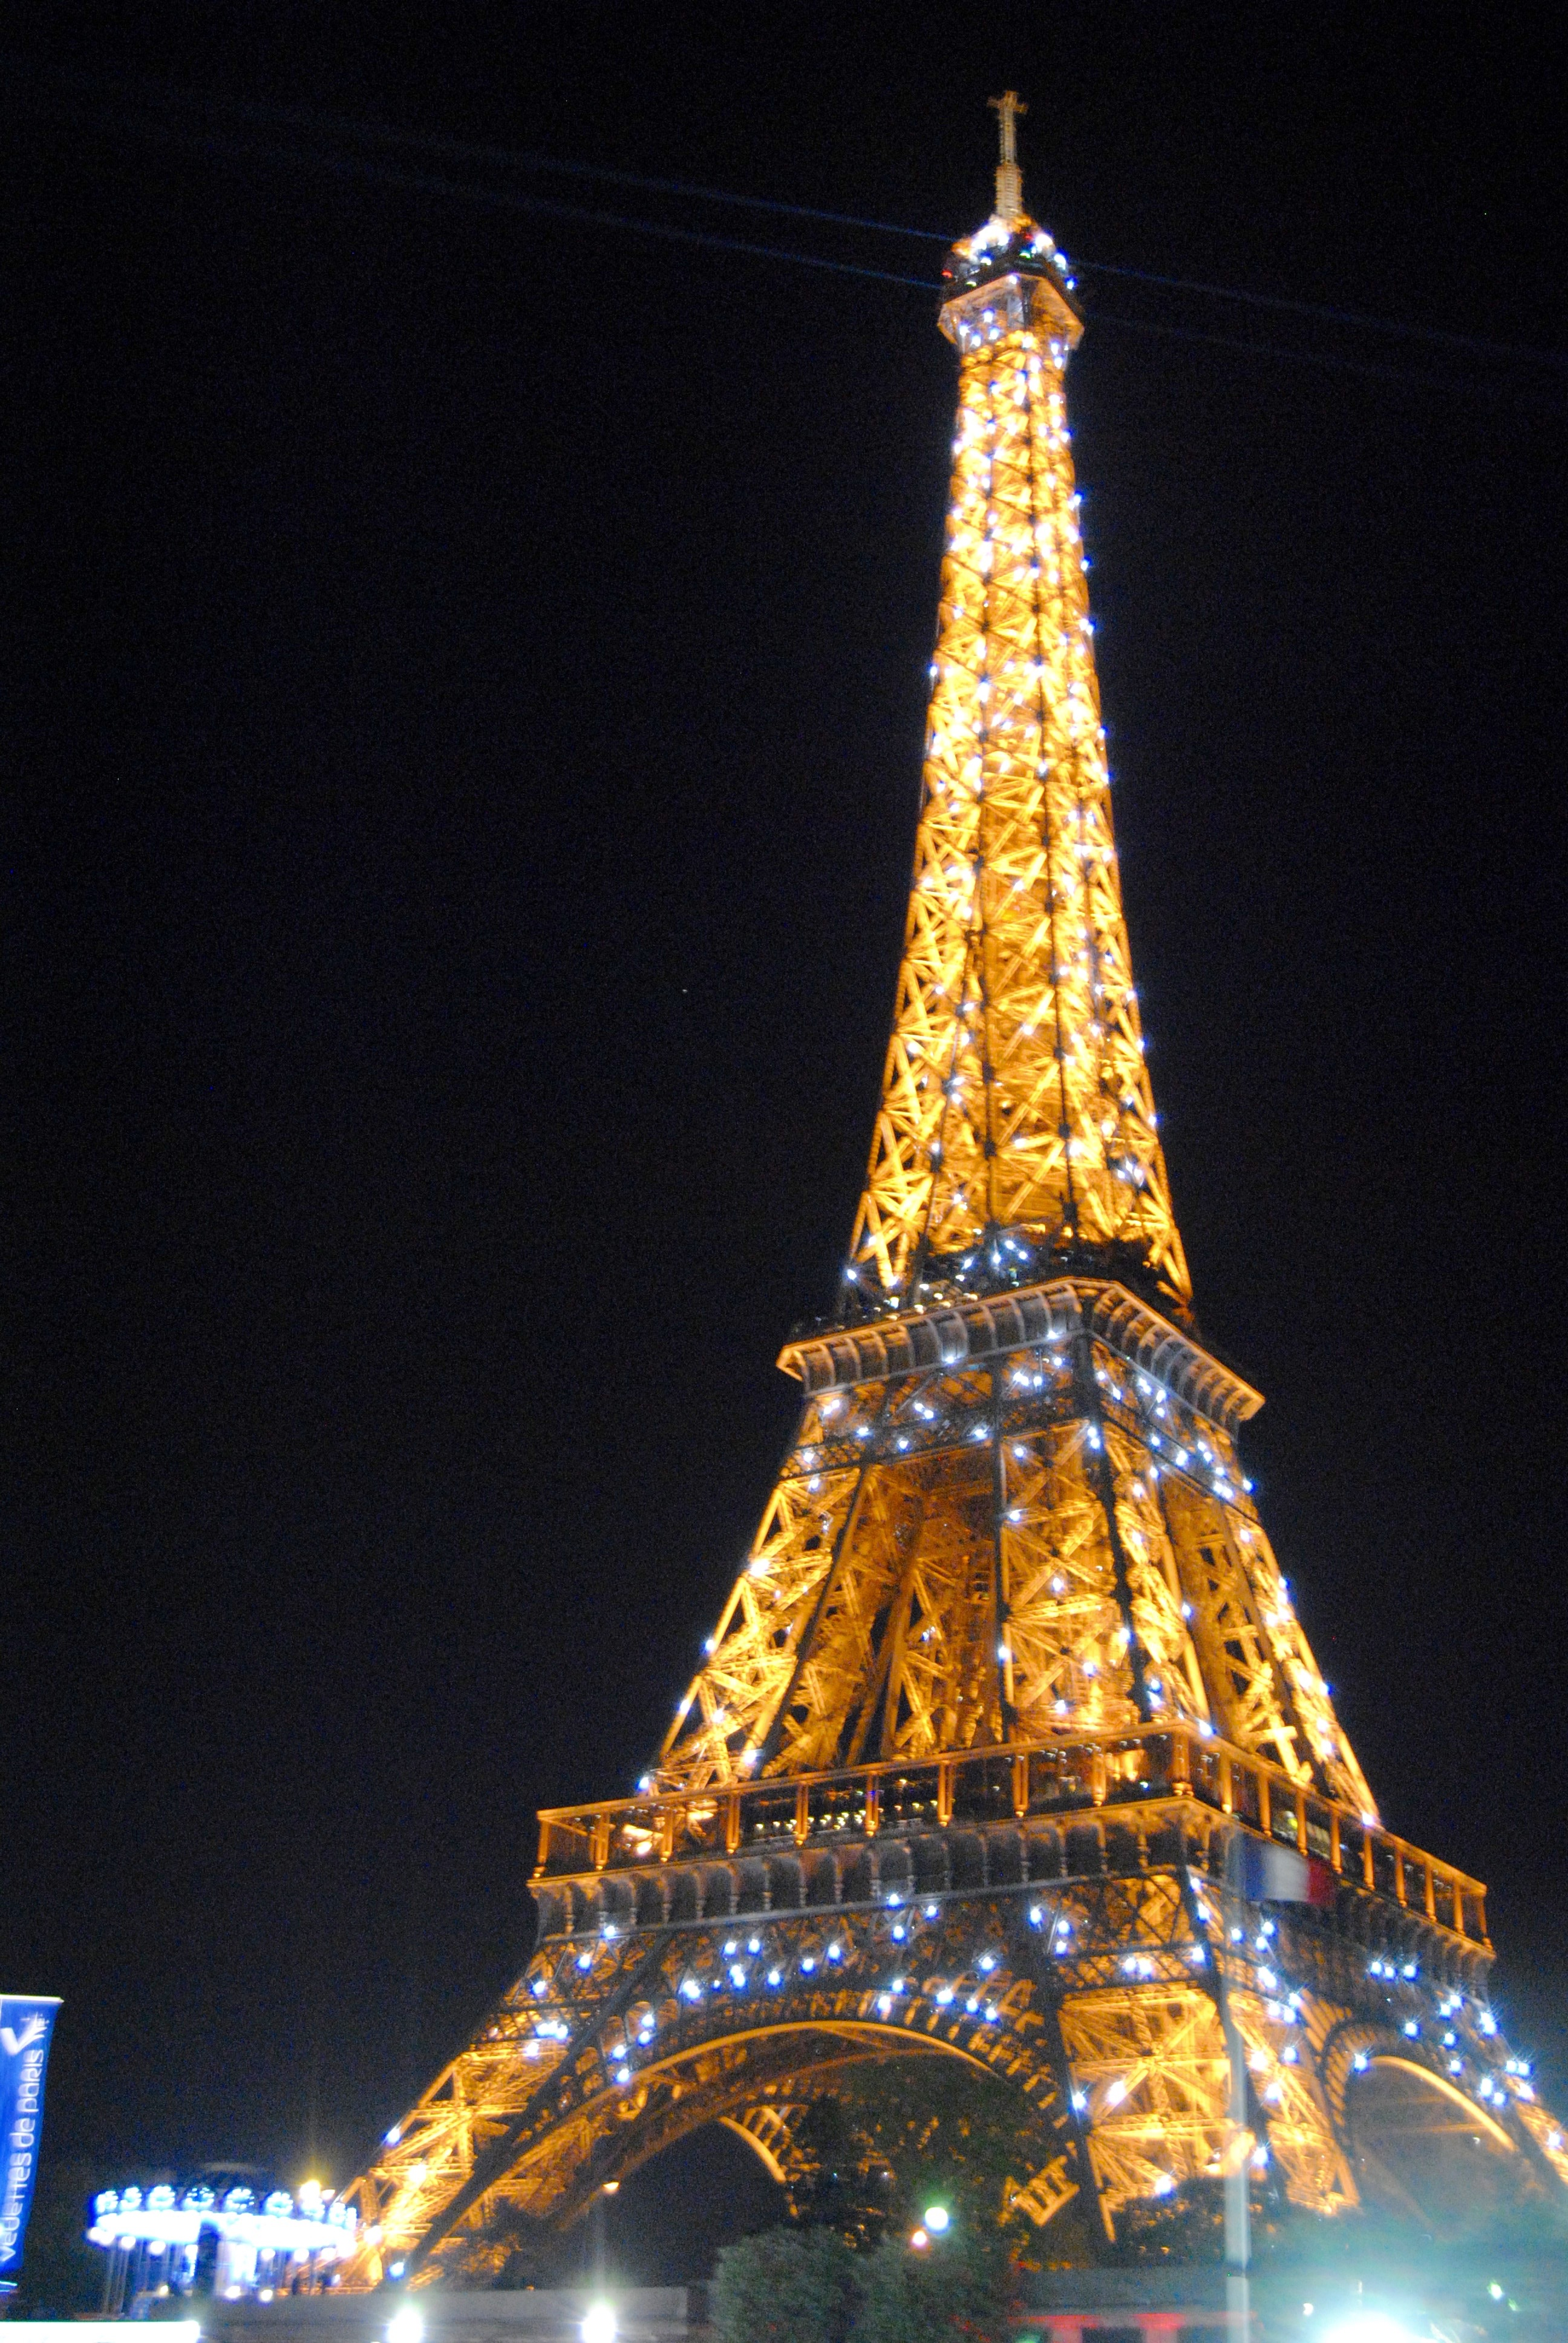 The Eiffel Tower sparkling at night.